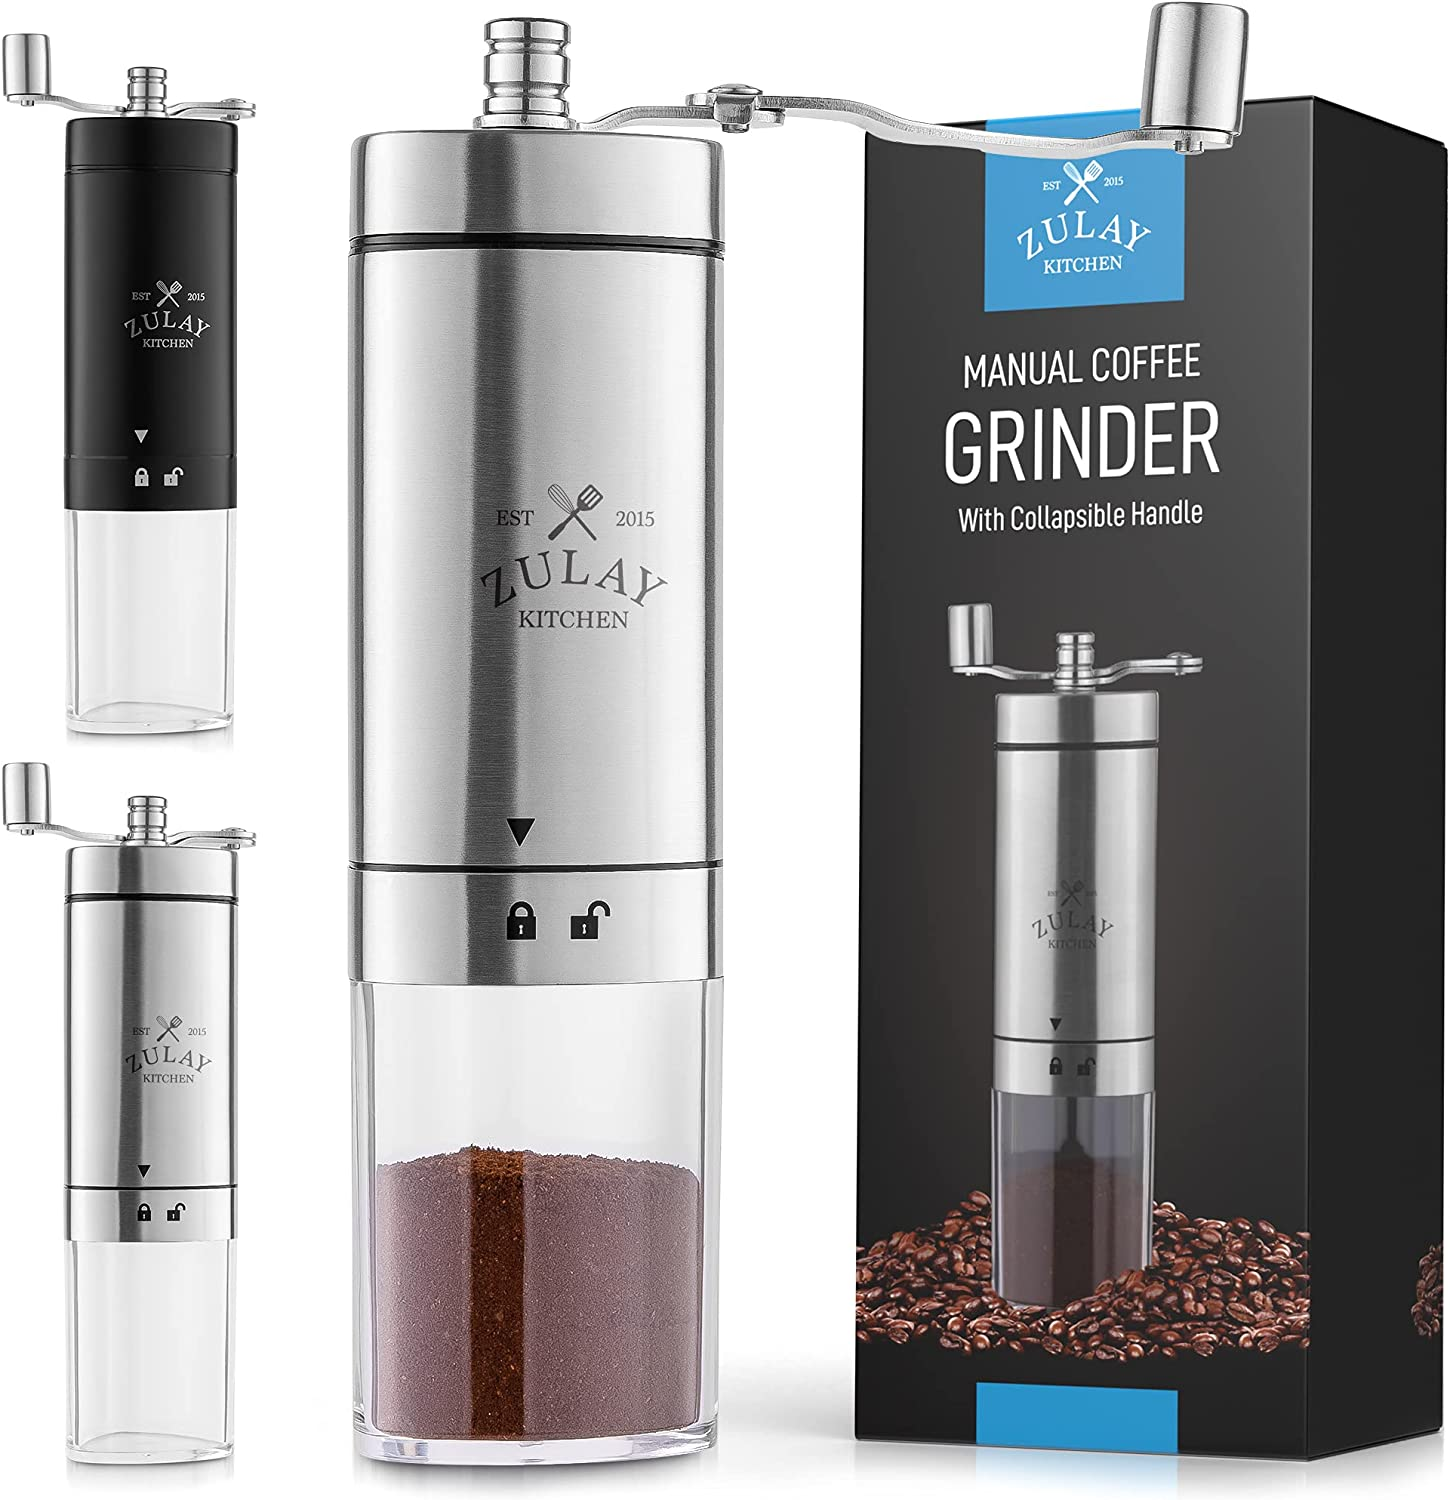 Zulay Manual Coffee Grinder With Handle online shop Foldable Popular product - Co Triangular